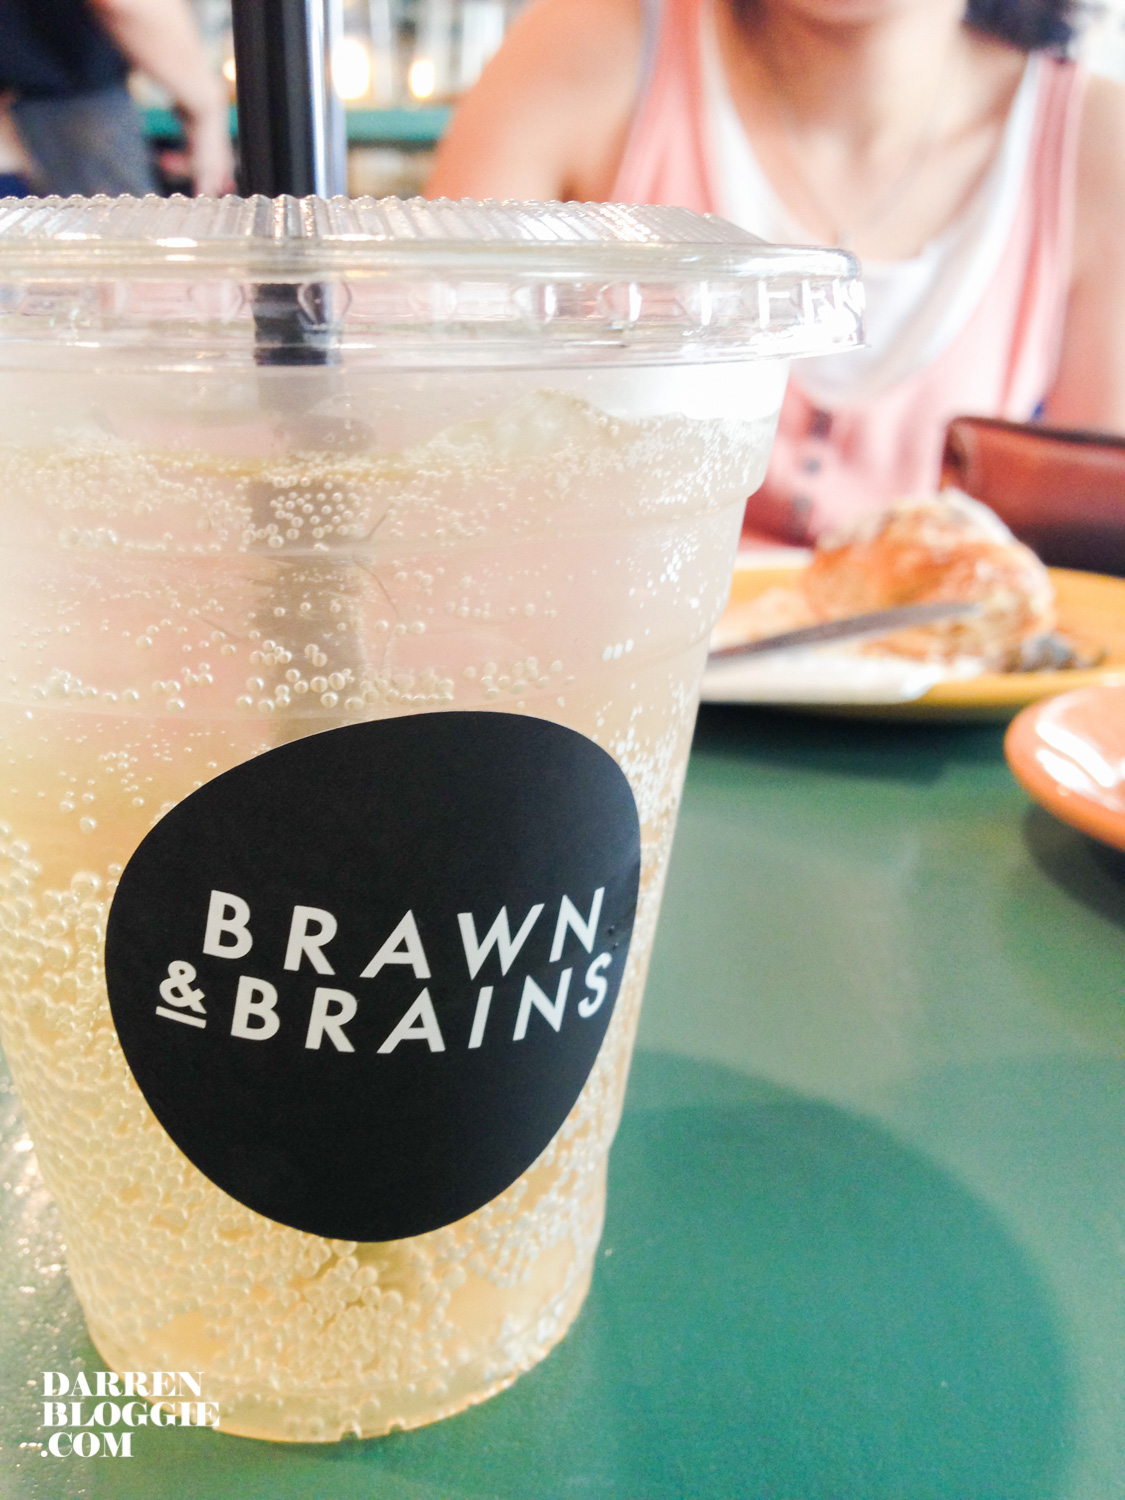 Brawn & Brains drinkcopy